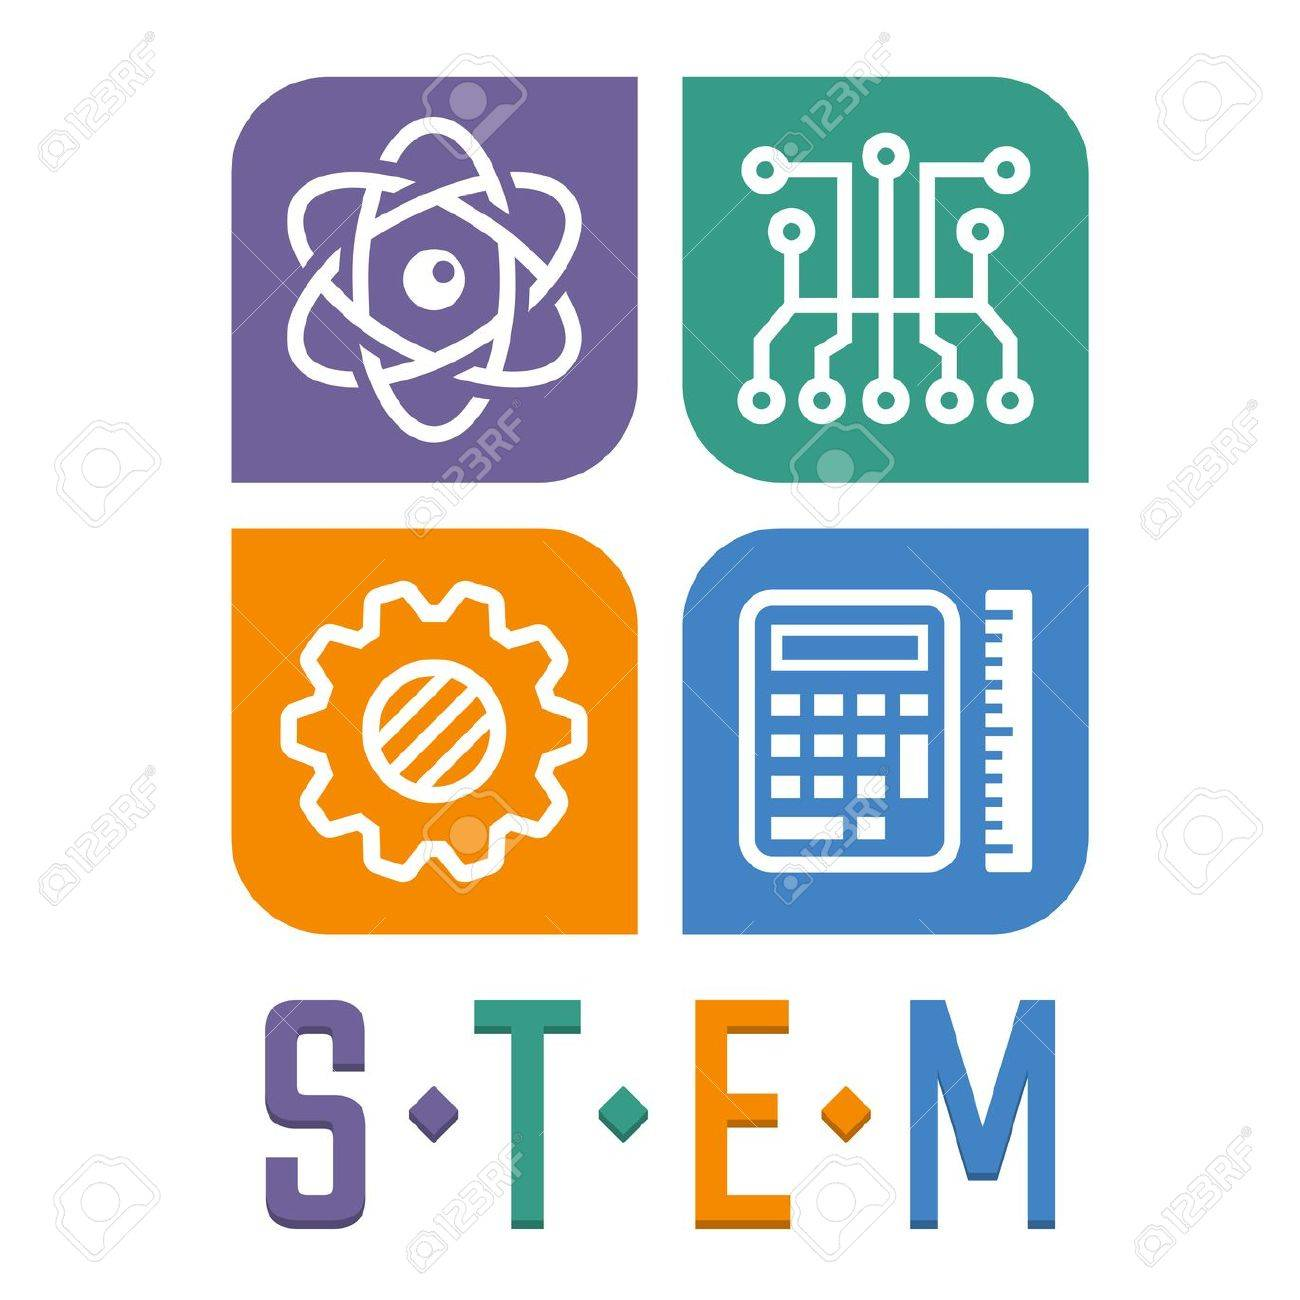 hight resolution of vector vector illustration of science technology engineering and math education